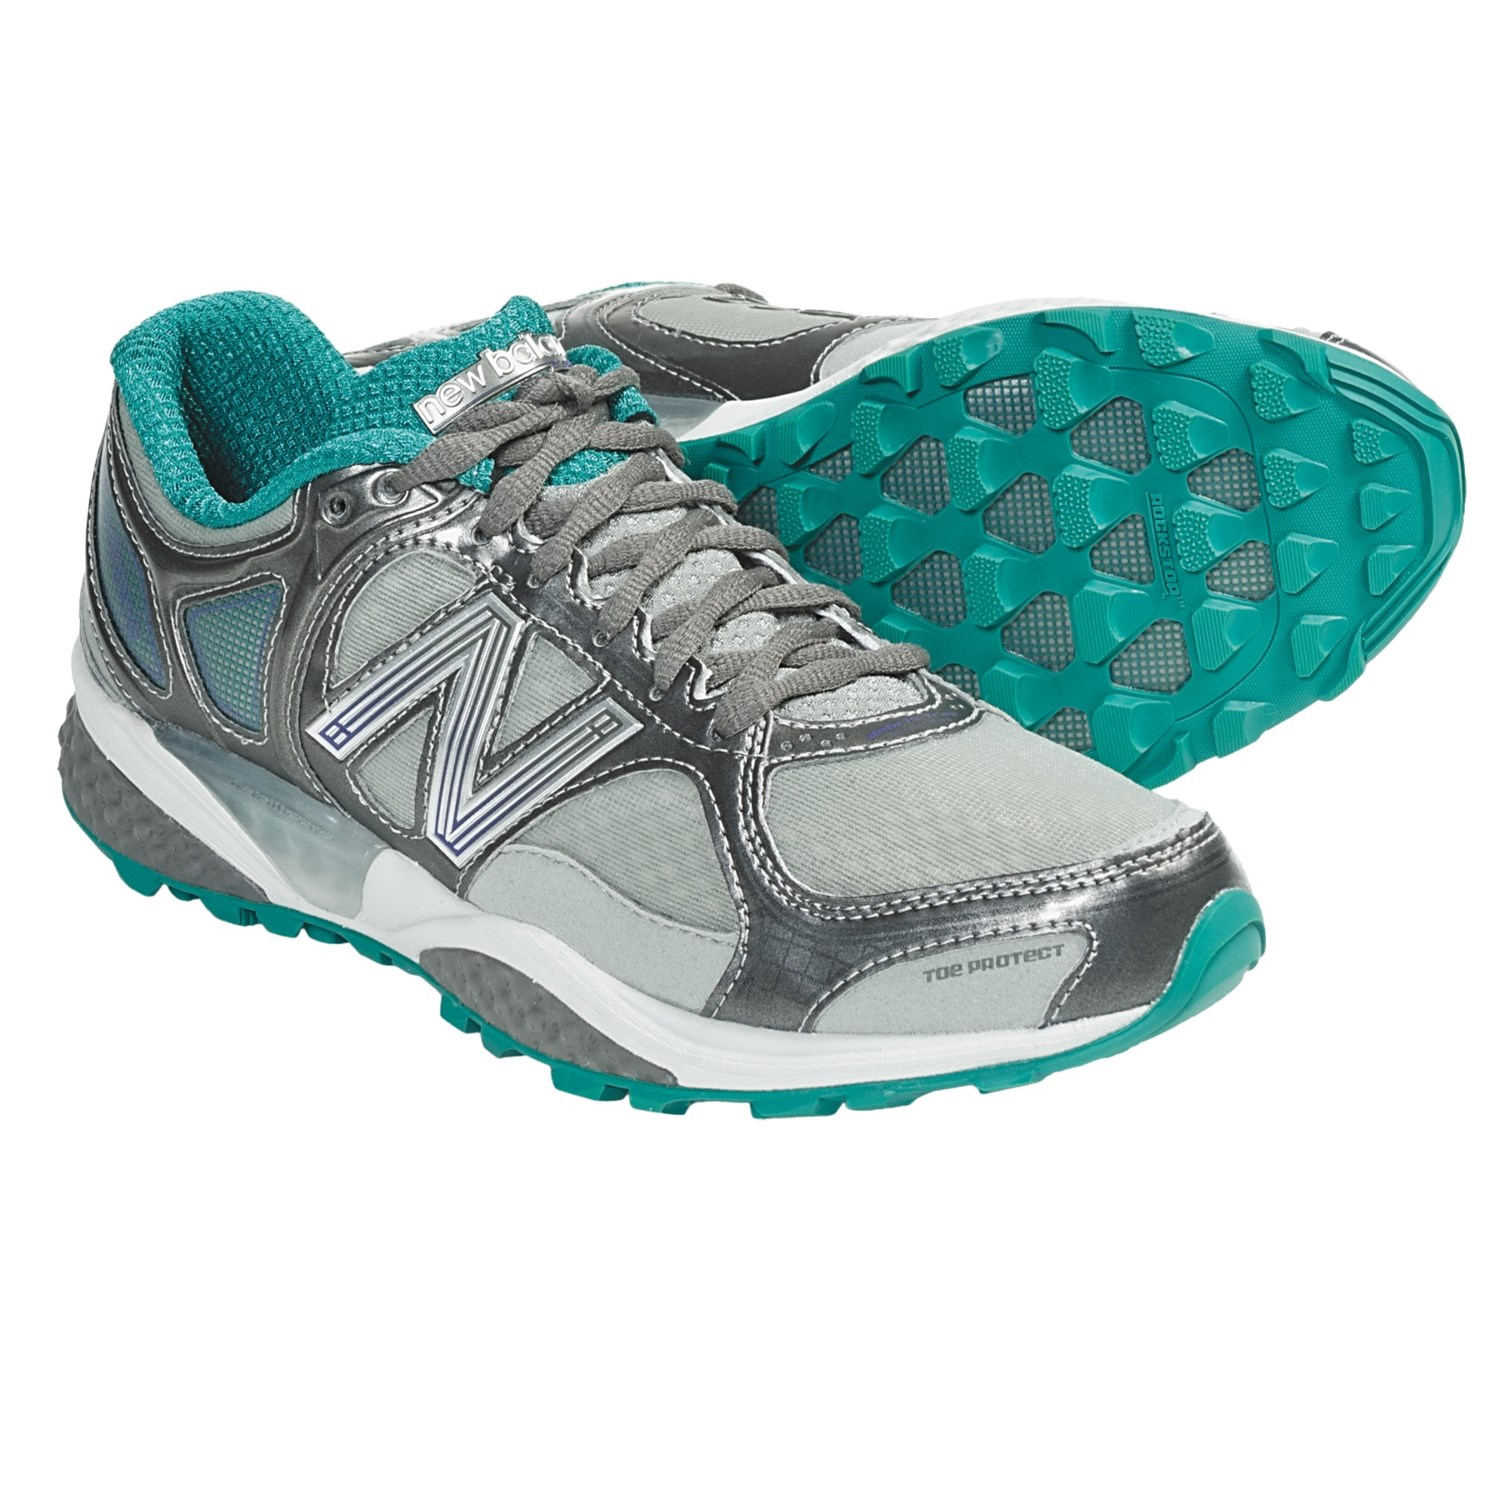 New Balance WT1110 Trail Running Shoes (For Women) in Deep Peacock